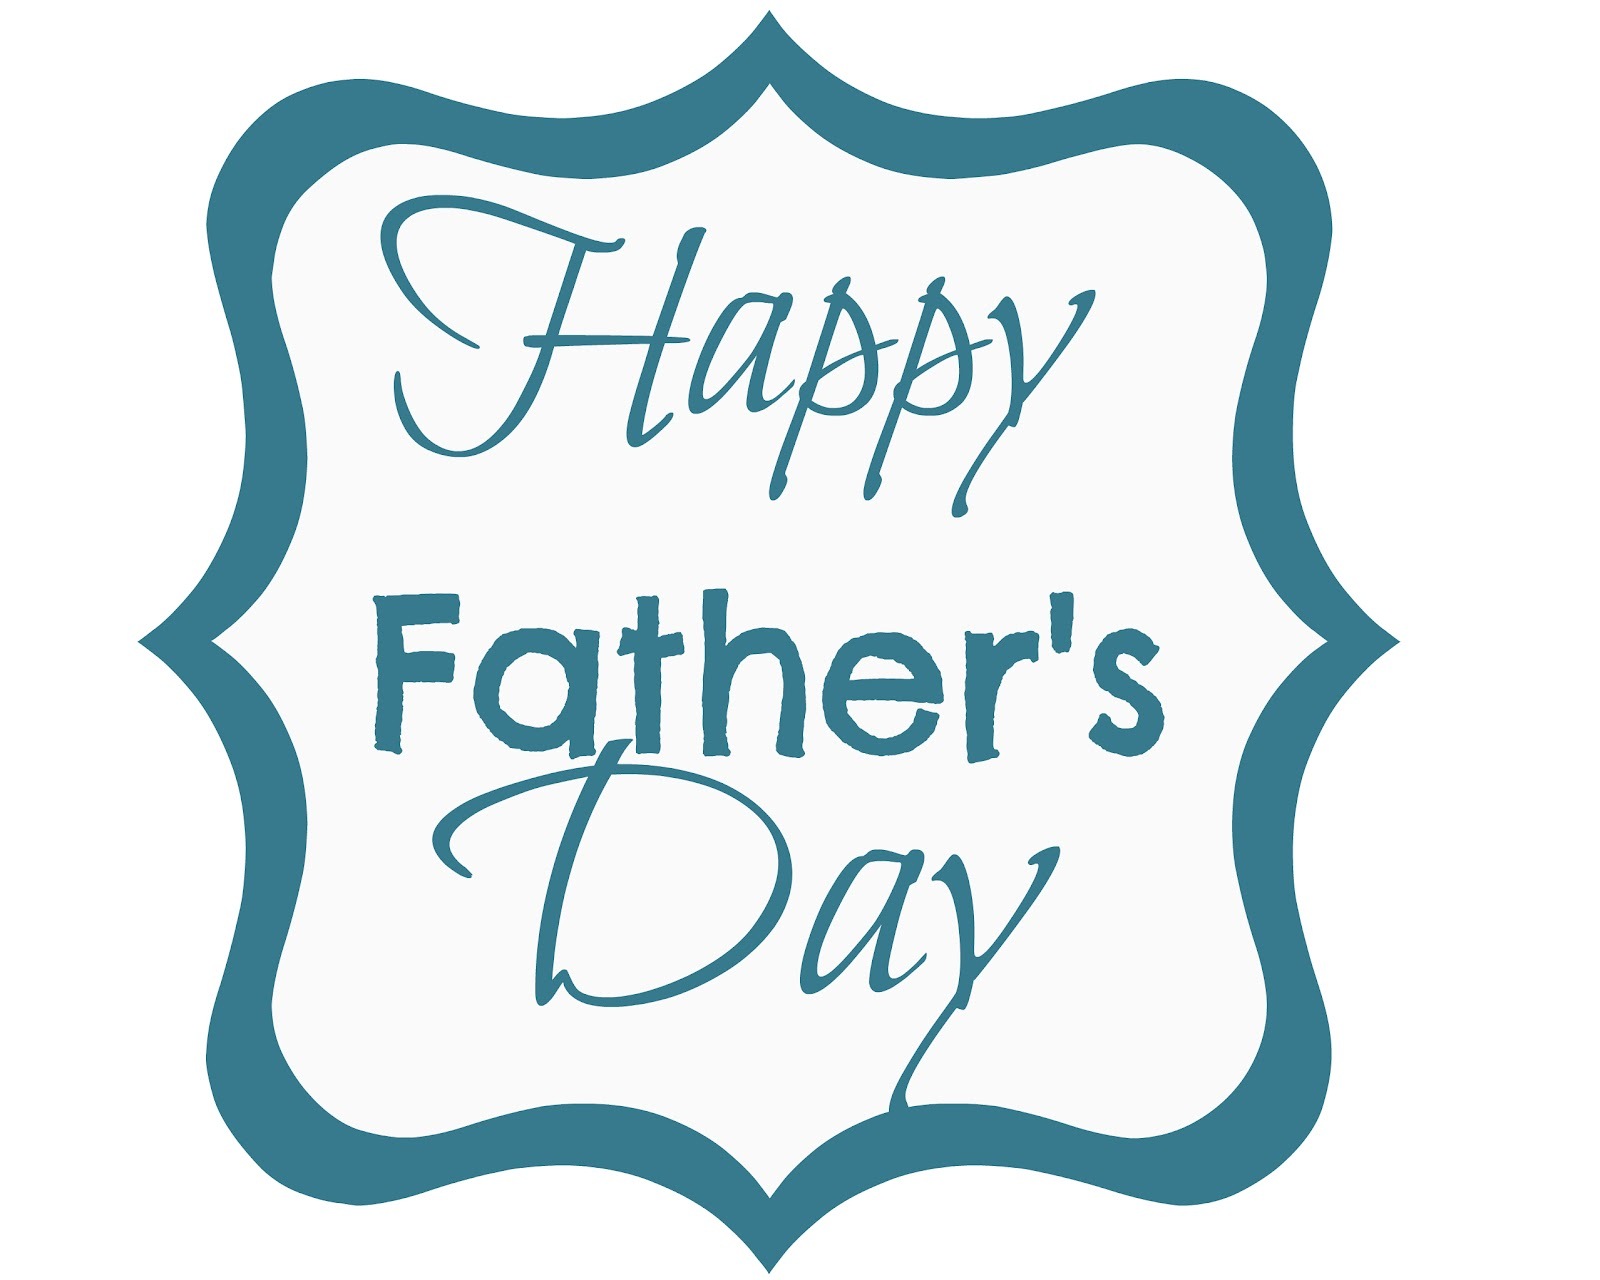 2017 clipart fathers day. Images for facebook happy